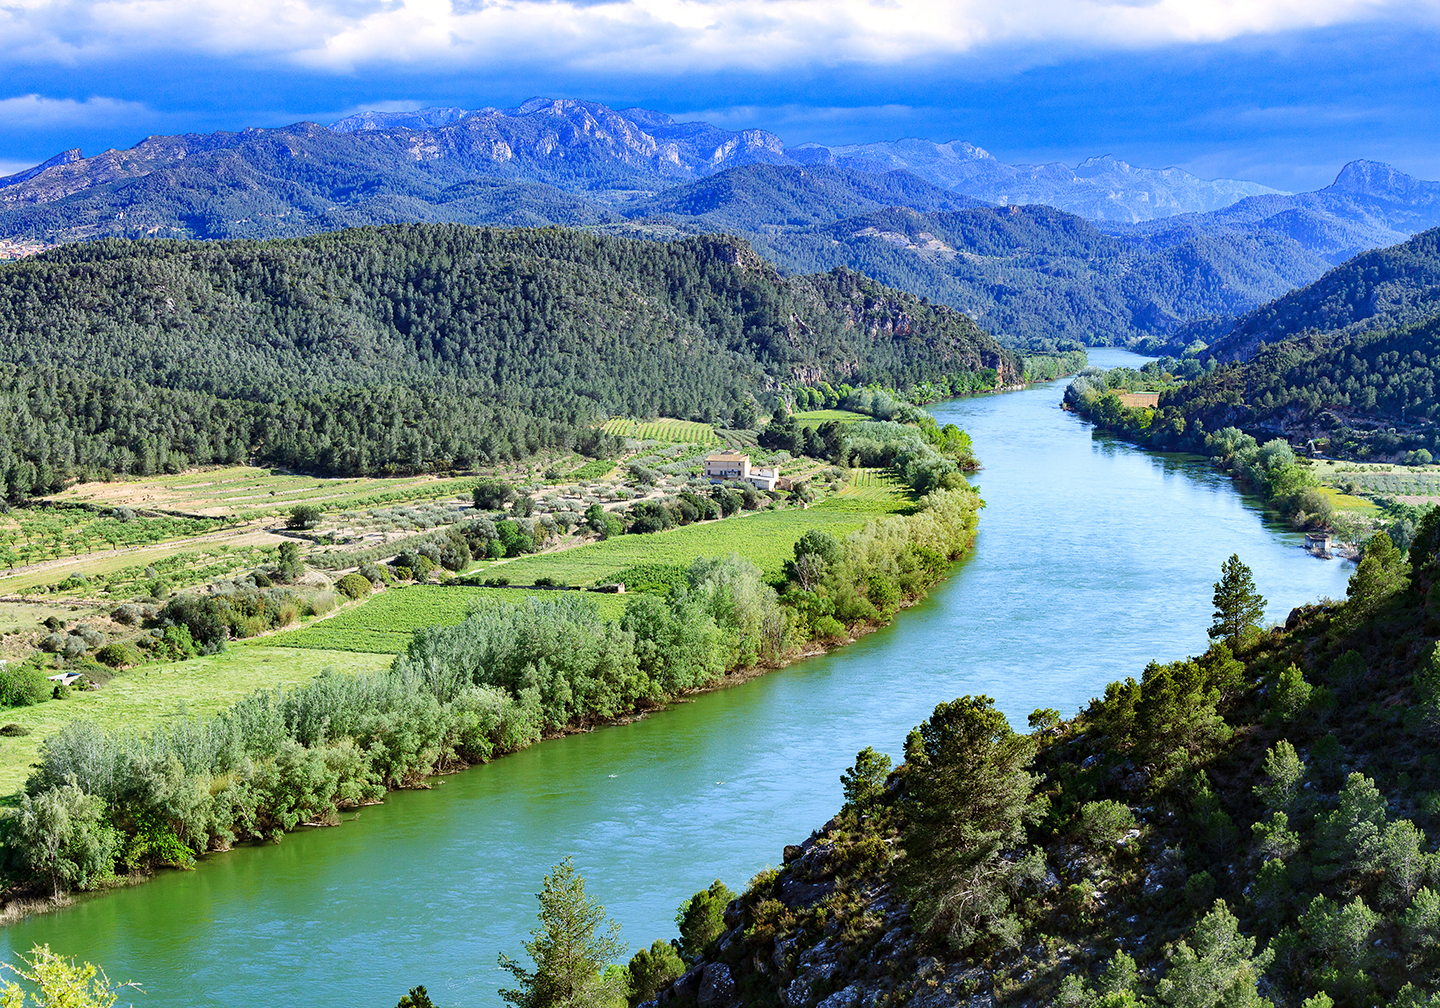 The Ebro River in Spain, with green fields on either side and blue mountains in the distance.